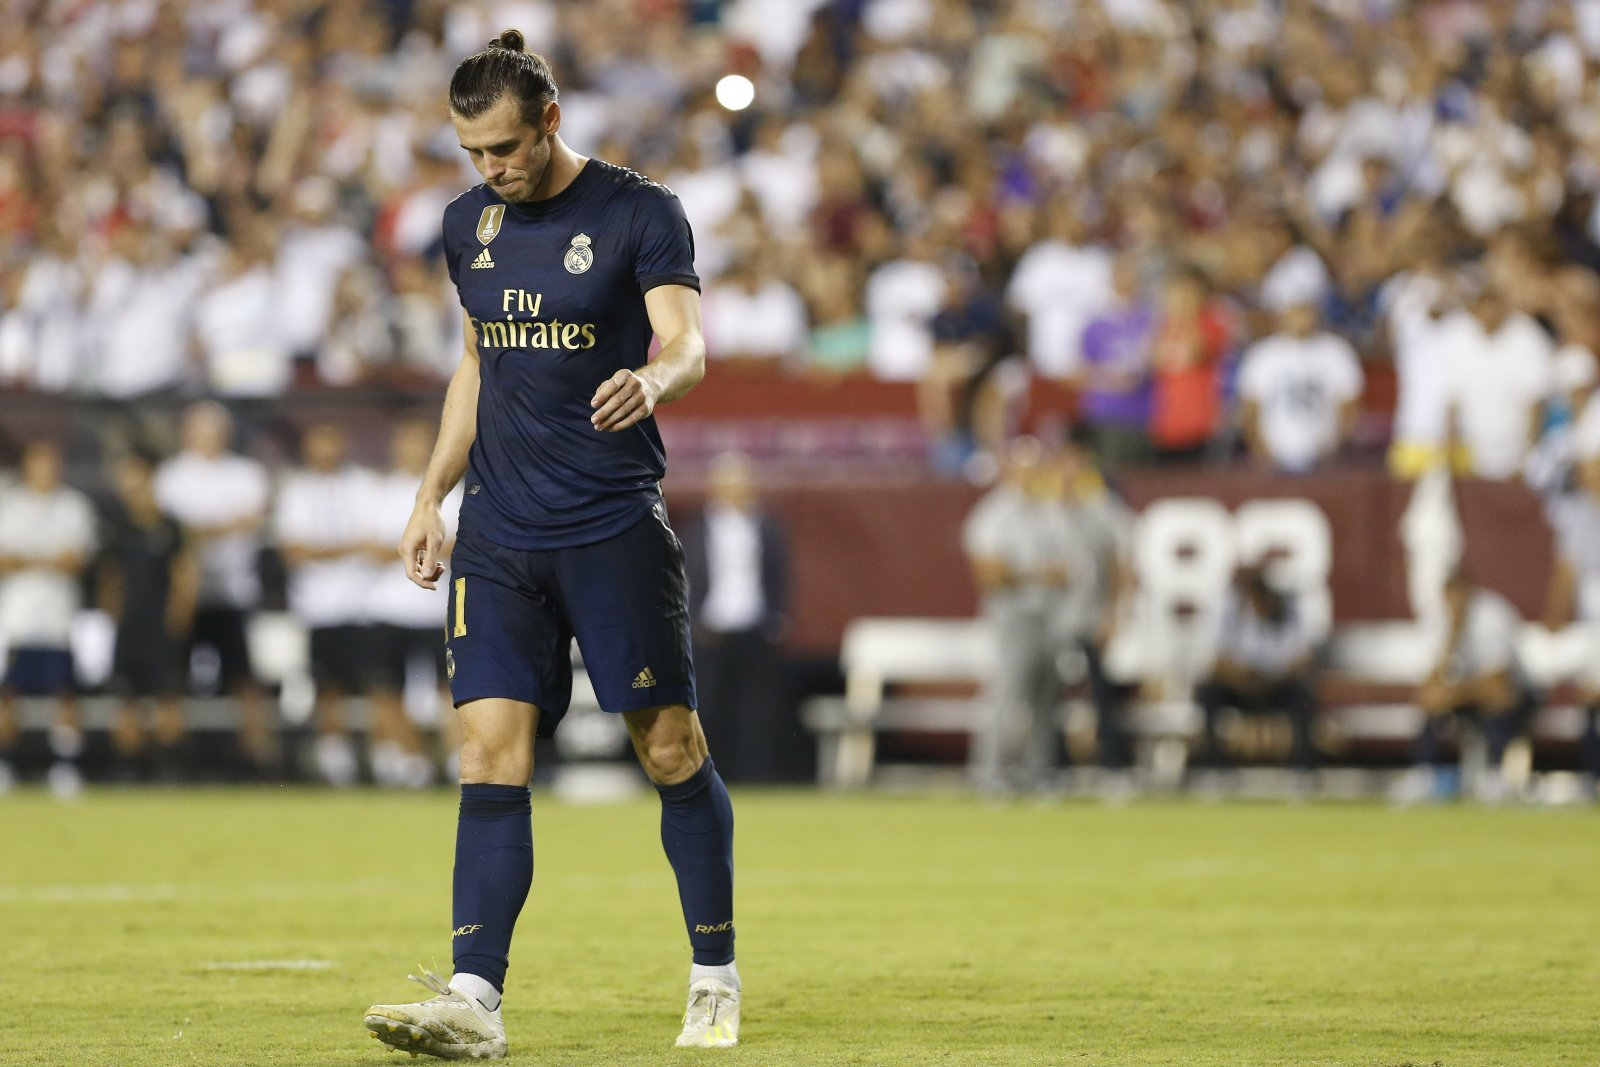 Real Madrid: Fans show love for Gareth Bale as the Welshman recovers from injury